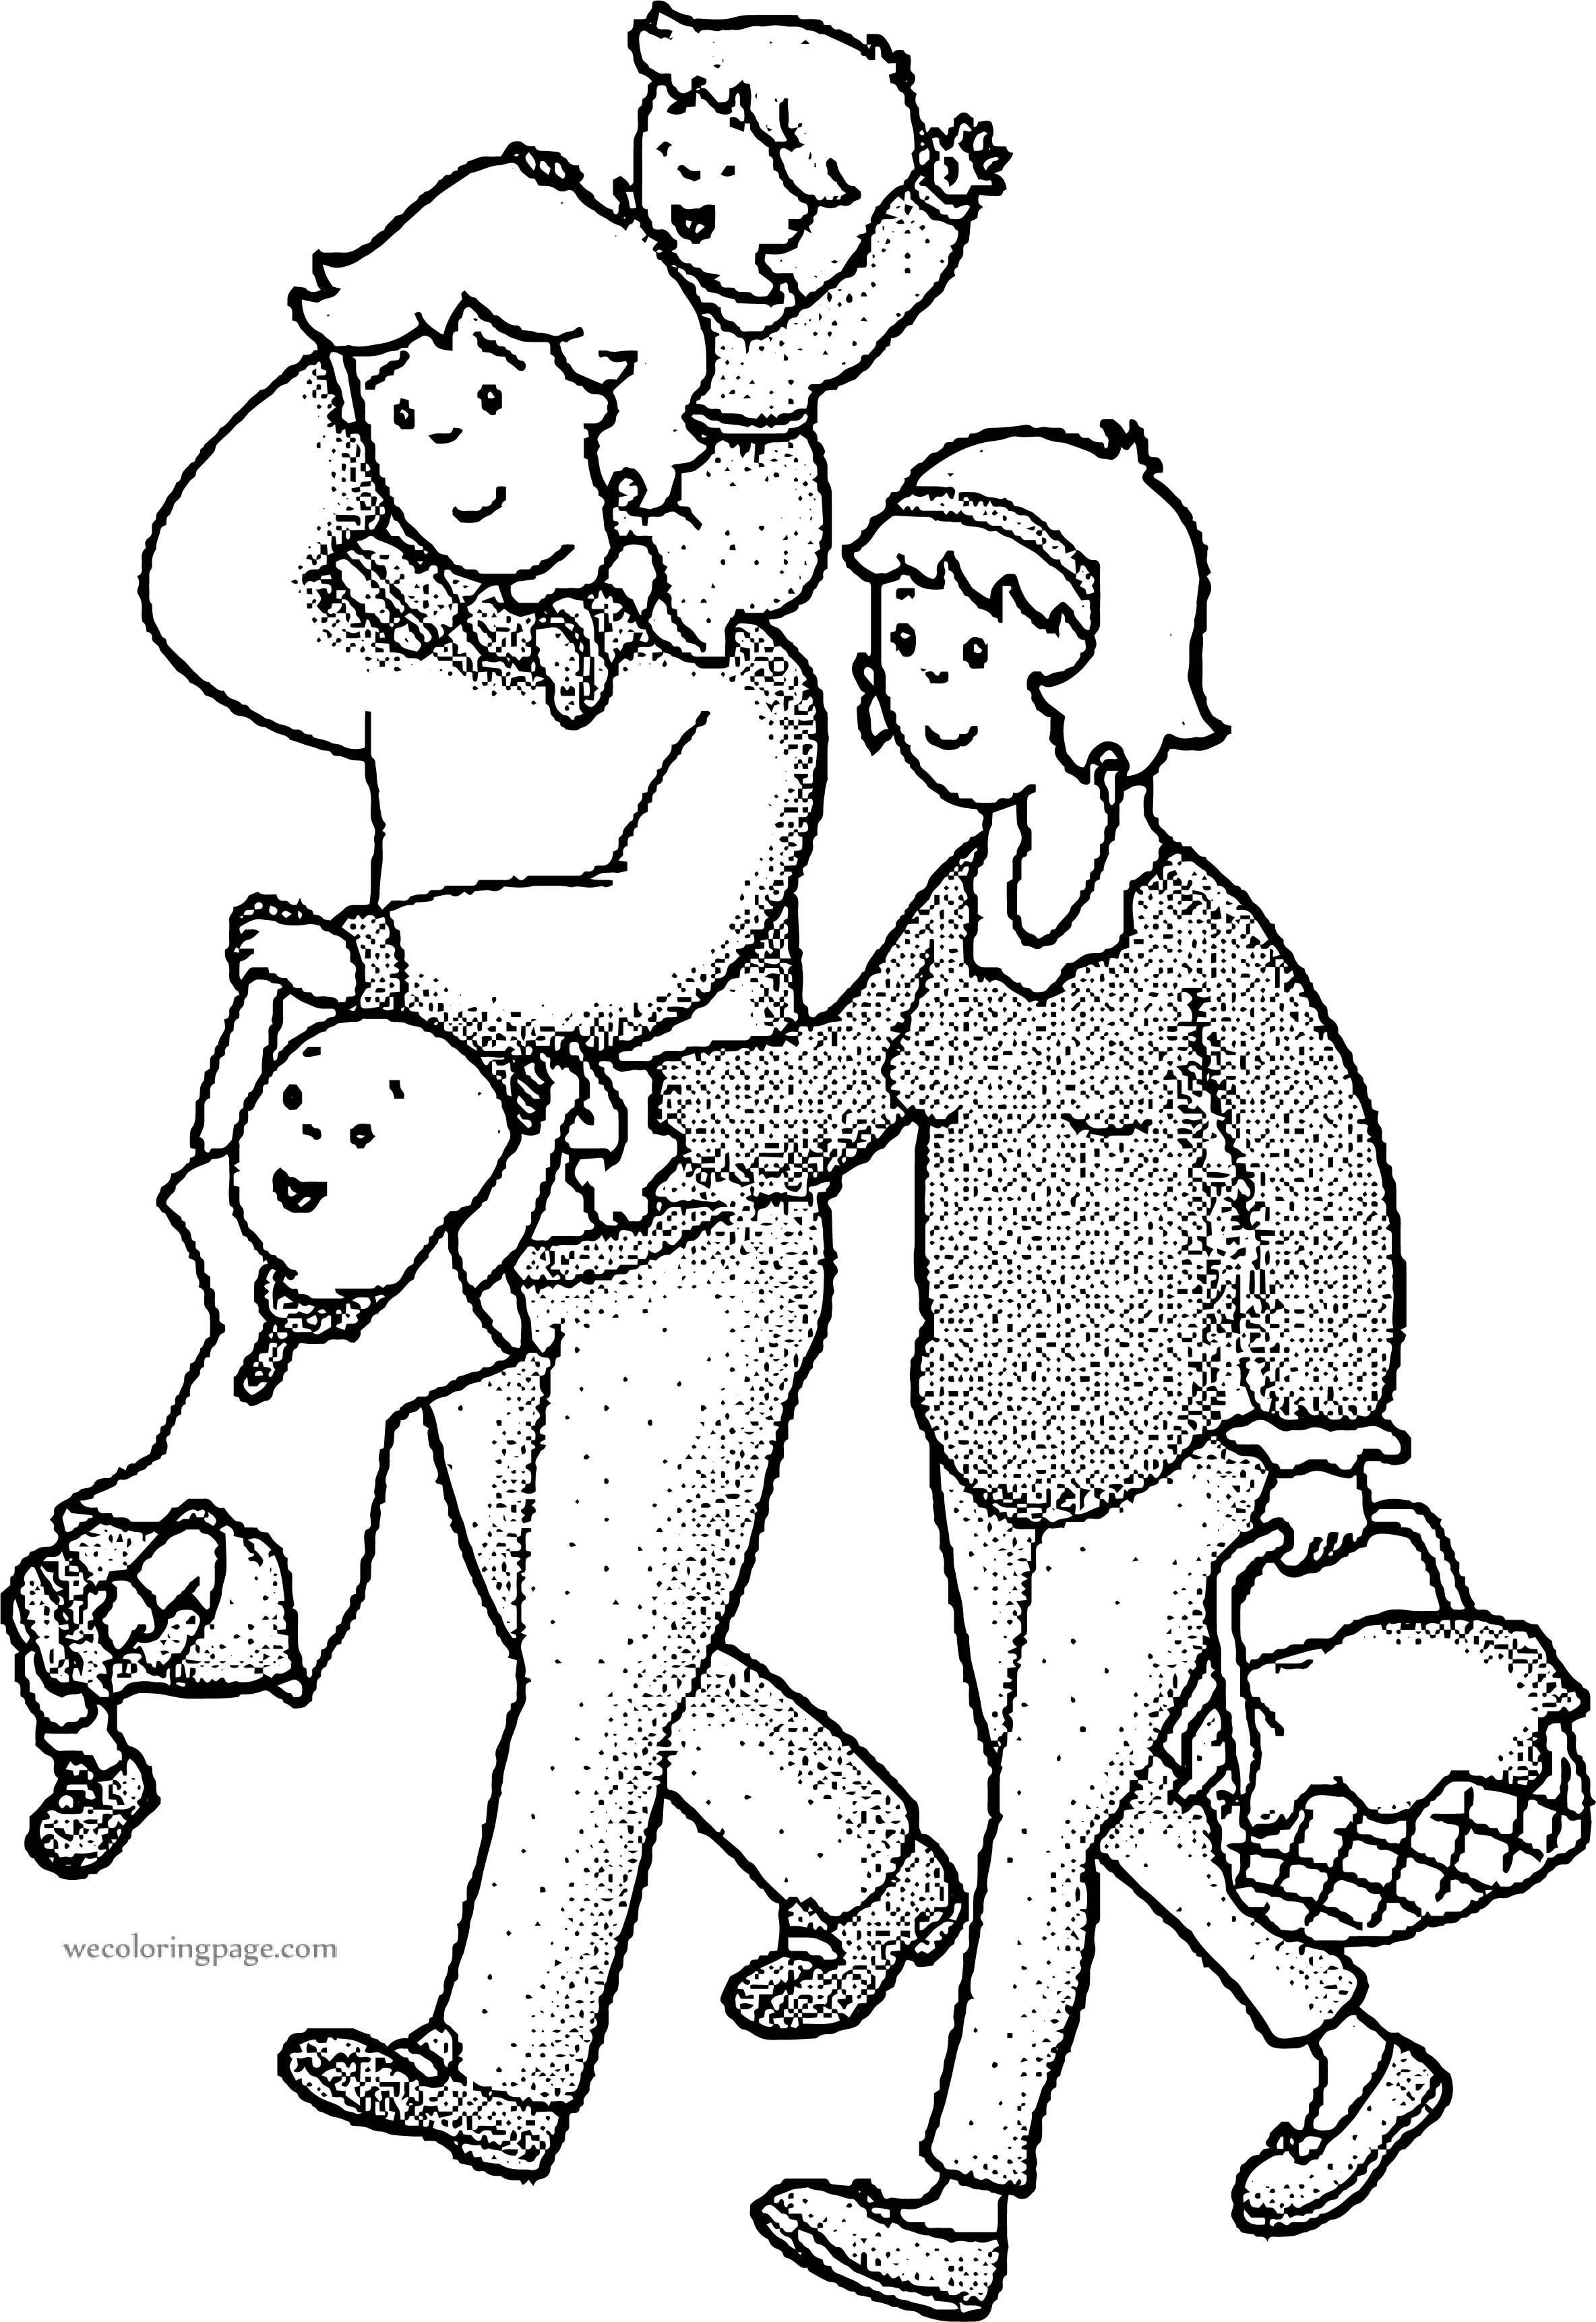 Caillou Coloring Page WeColoringPage 082